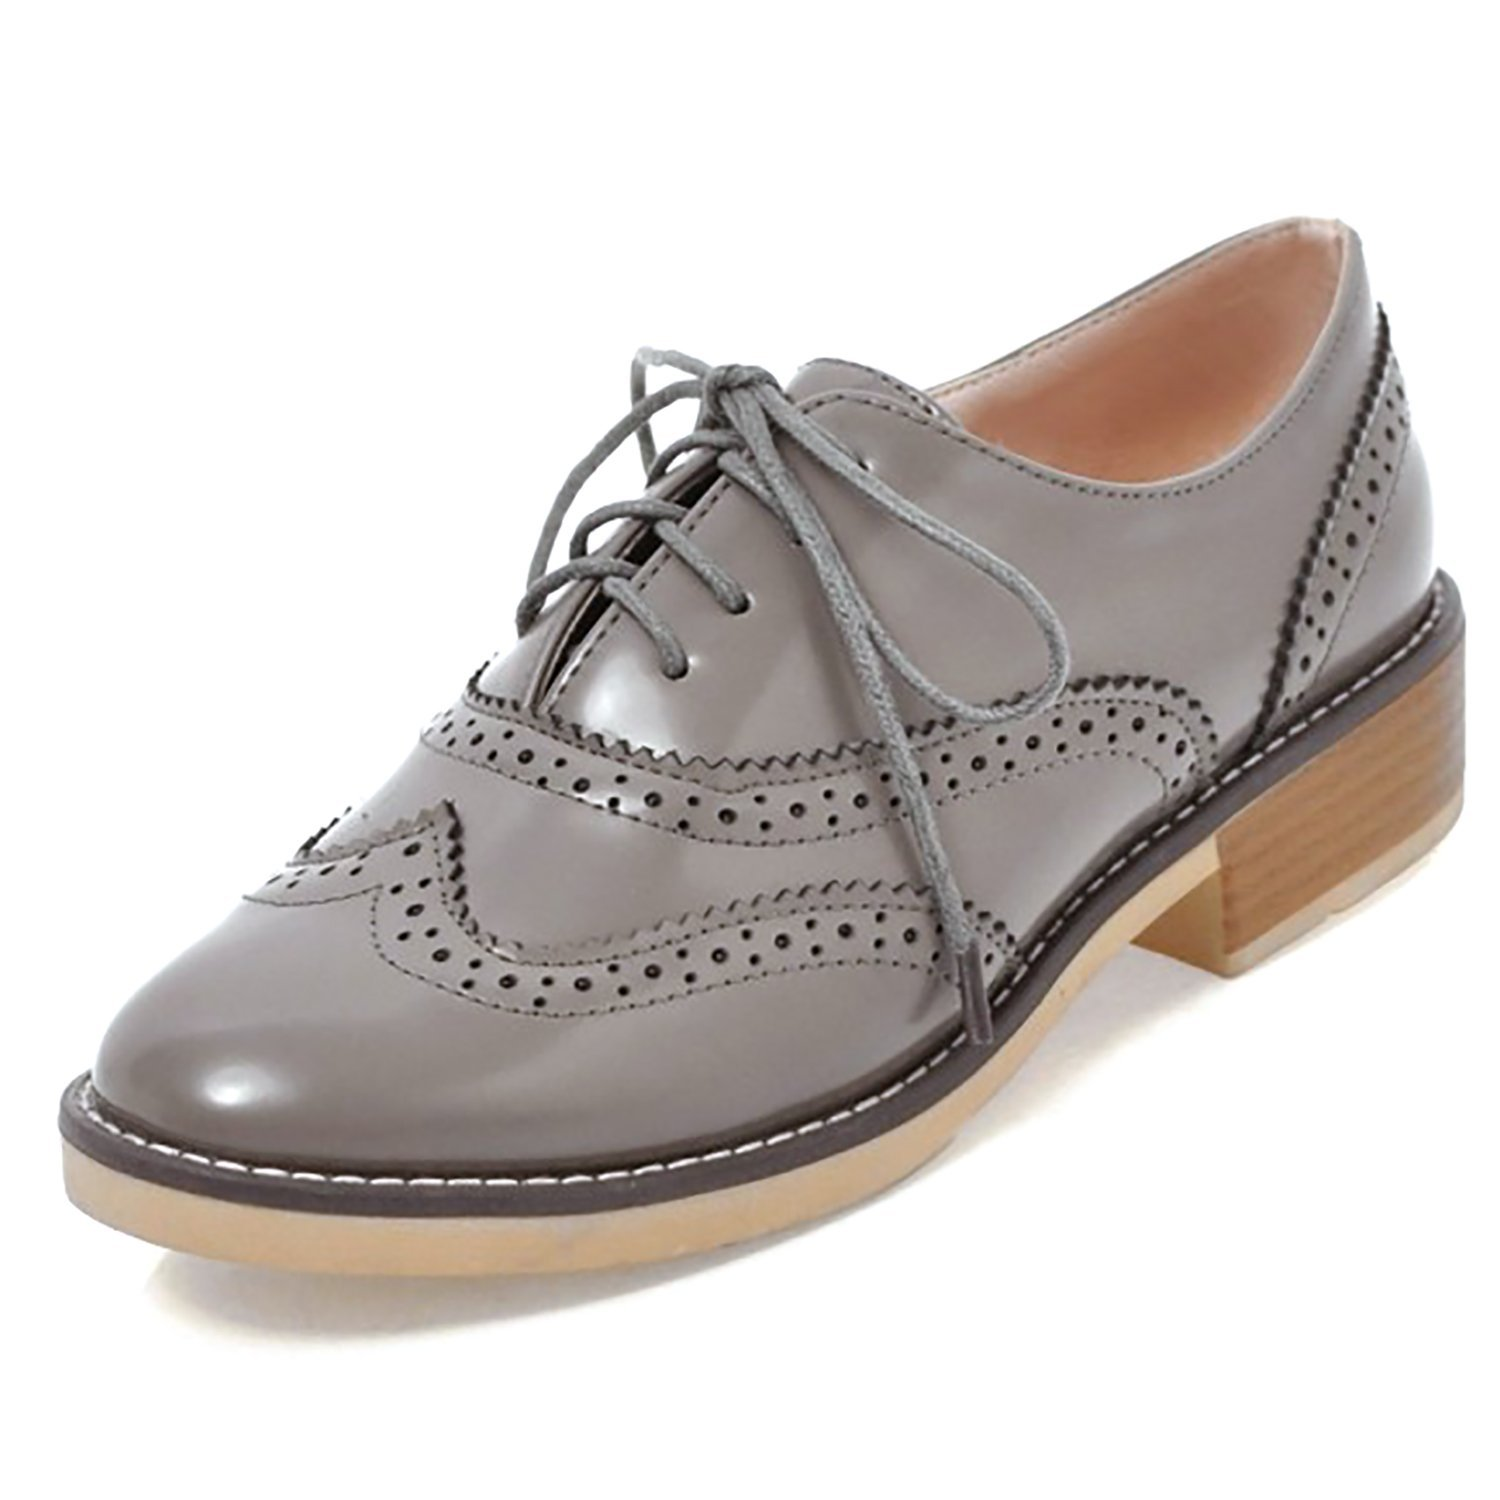 8bbef37c60 Get Quotations · Odema Womens PU Patent Leather Oxfords Brogue Wingtip Lace  Up Chunky Low Heel Shoes Dress Oxfords